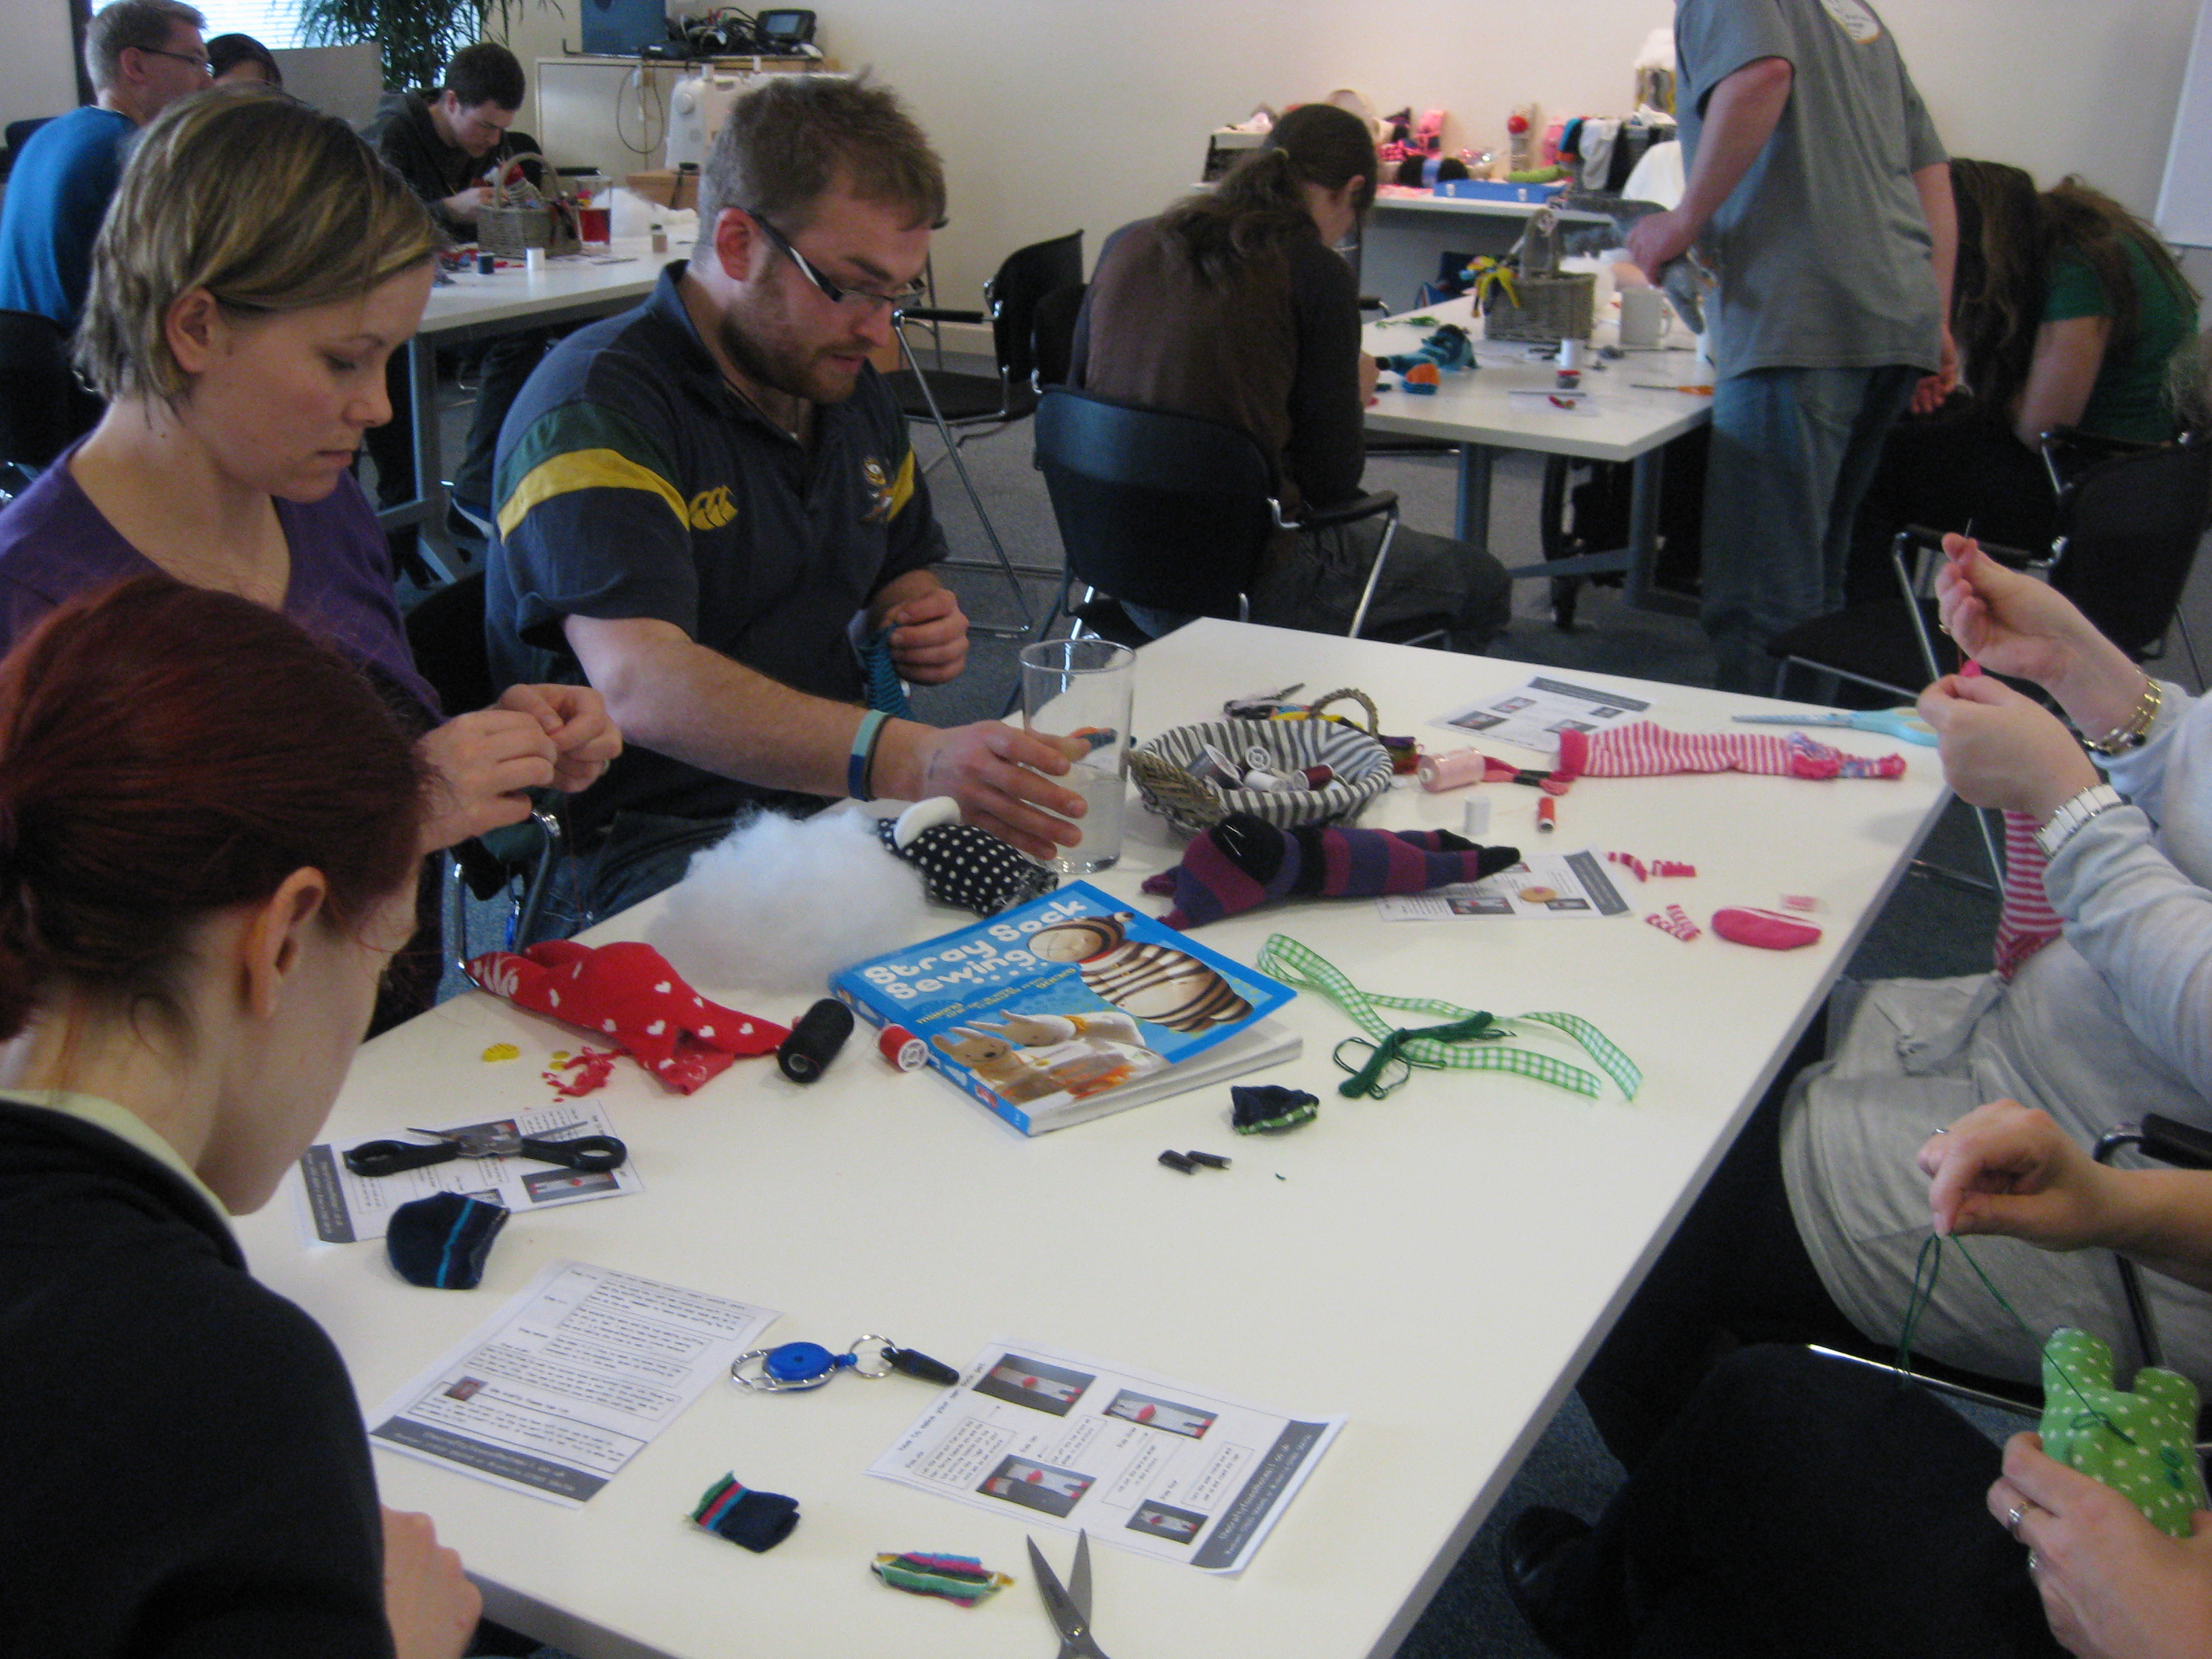 Redgate software firm making sock pets!